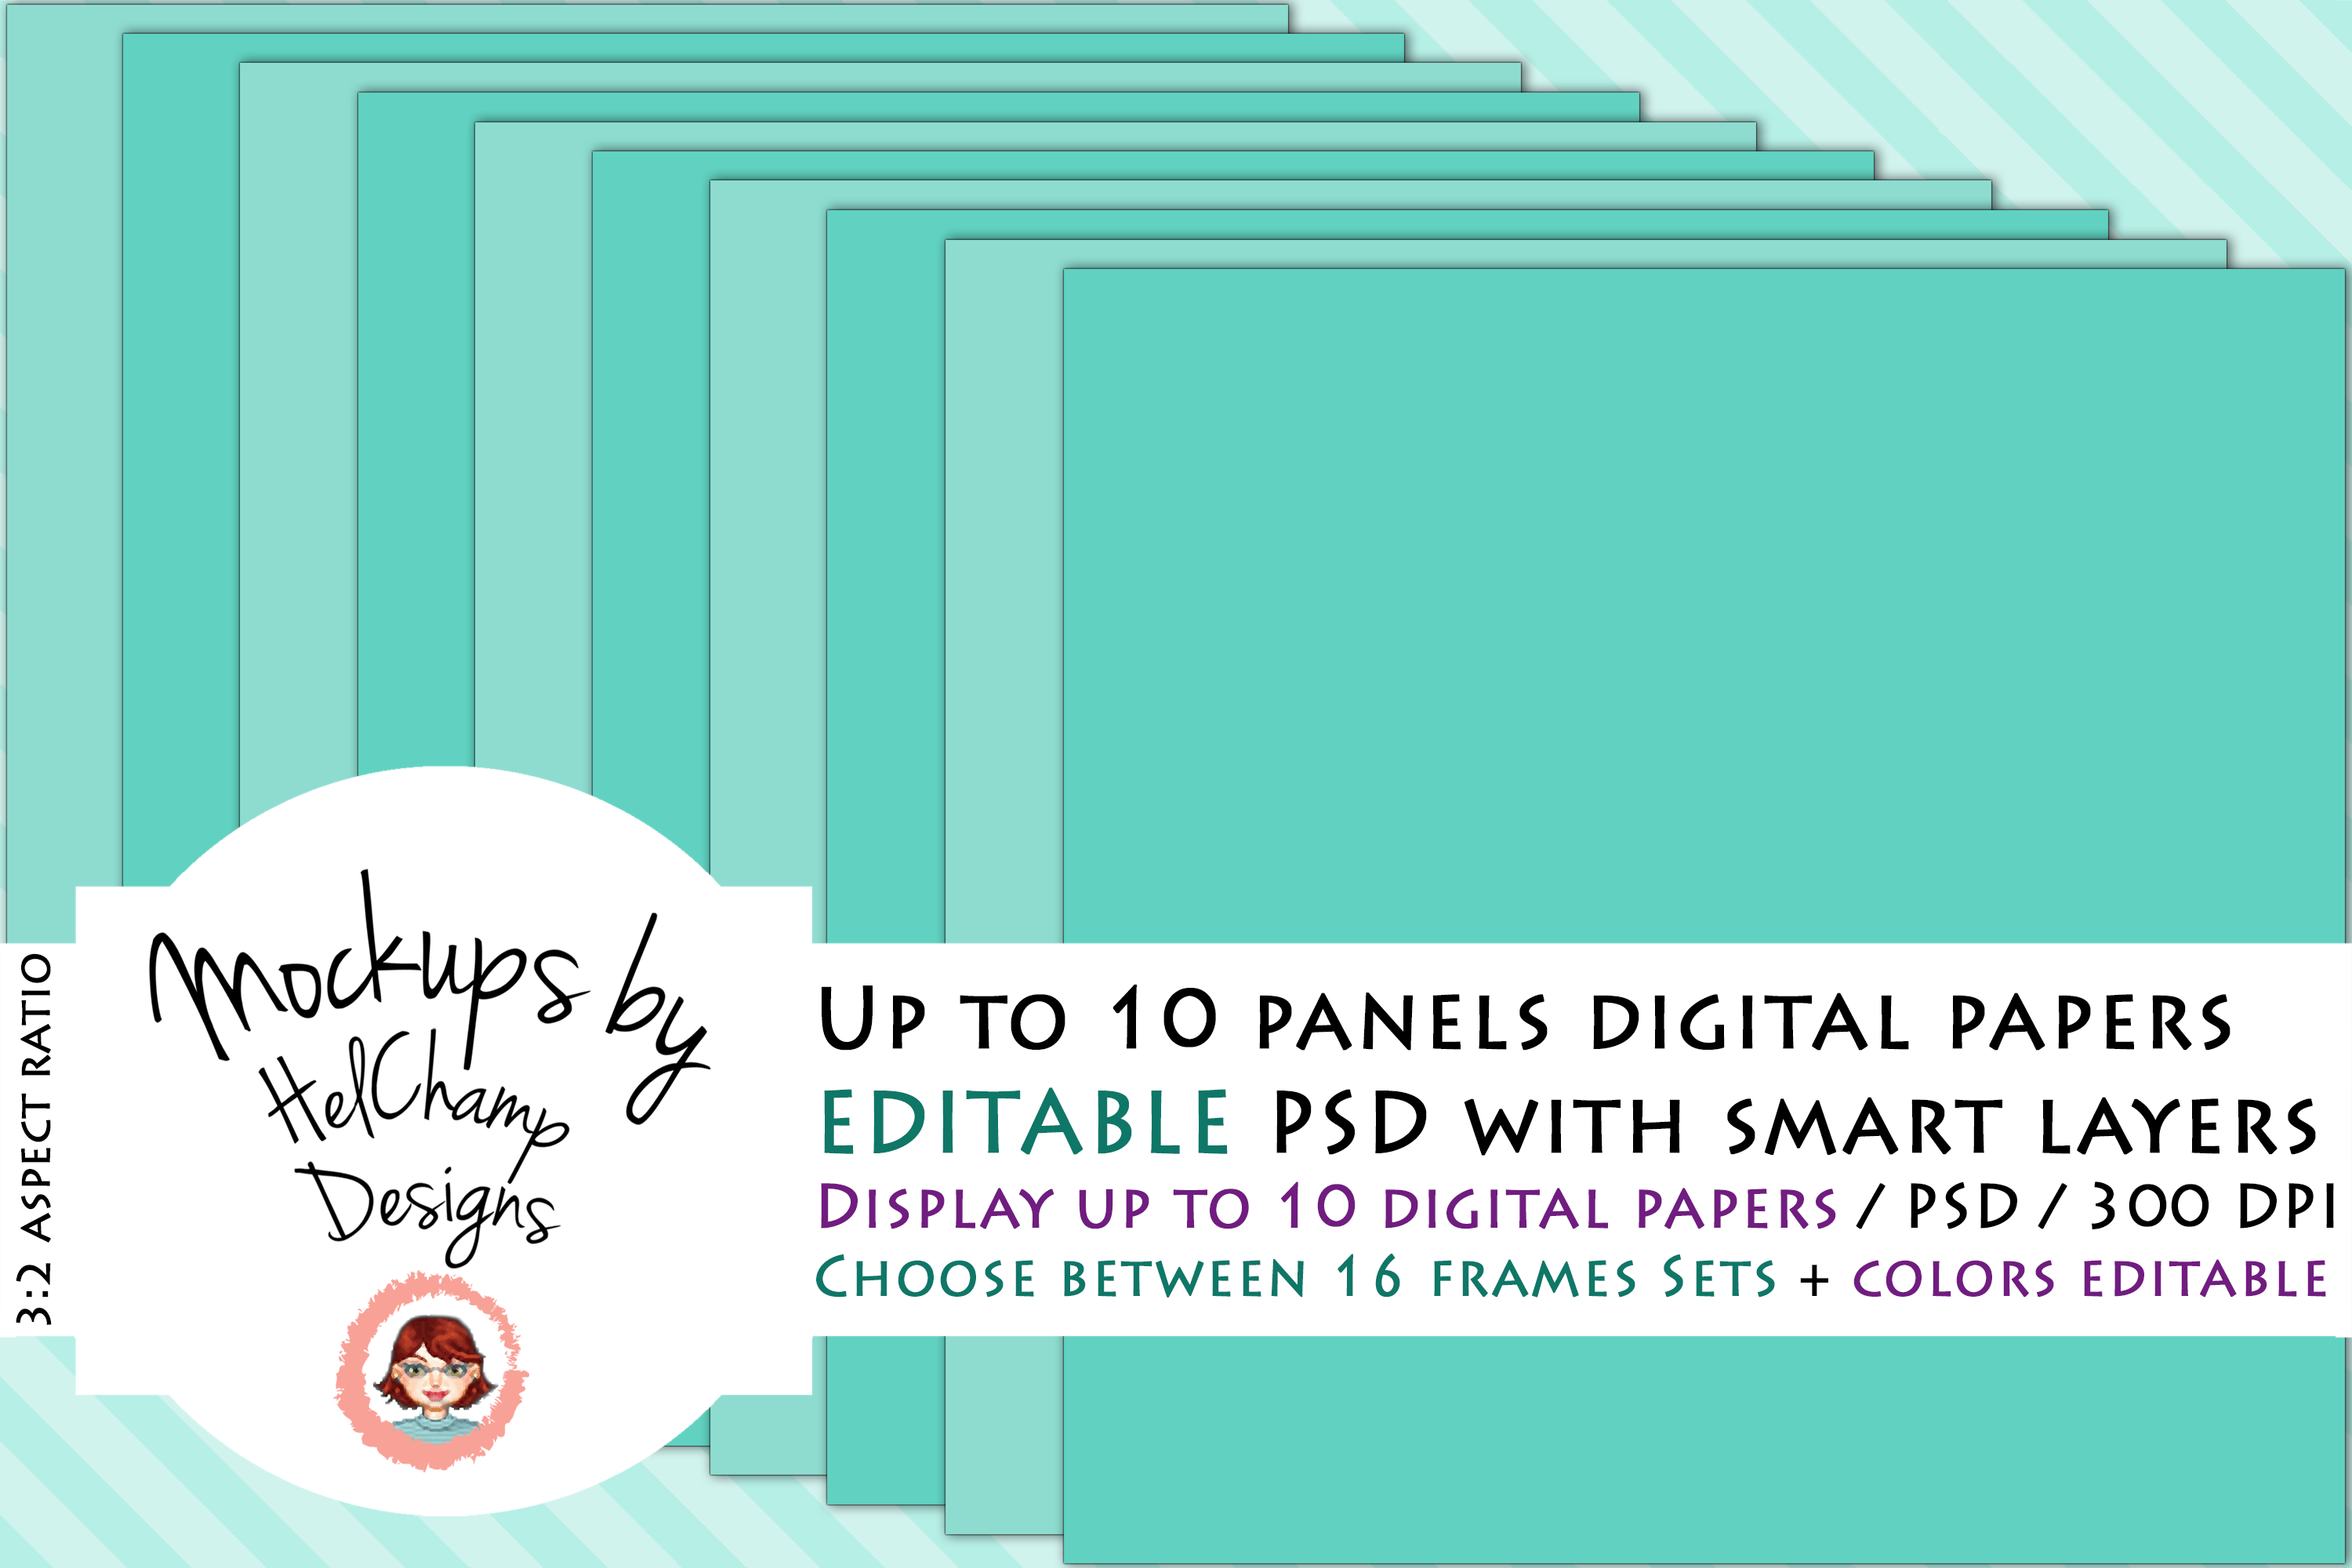 1 to 10 Panels Mockup for Digital Papers - M04 example image 1